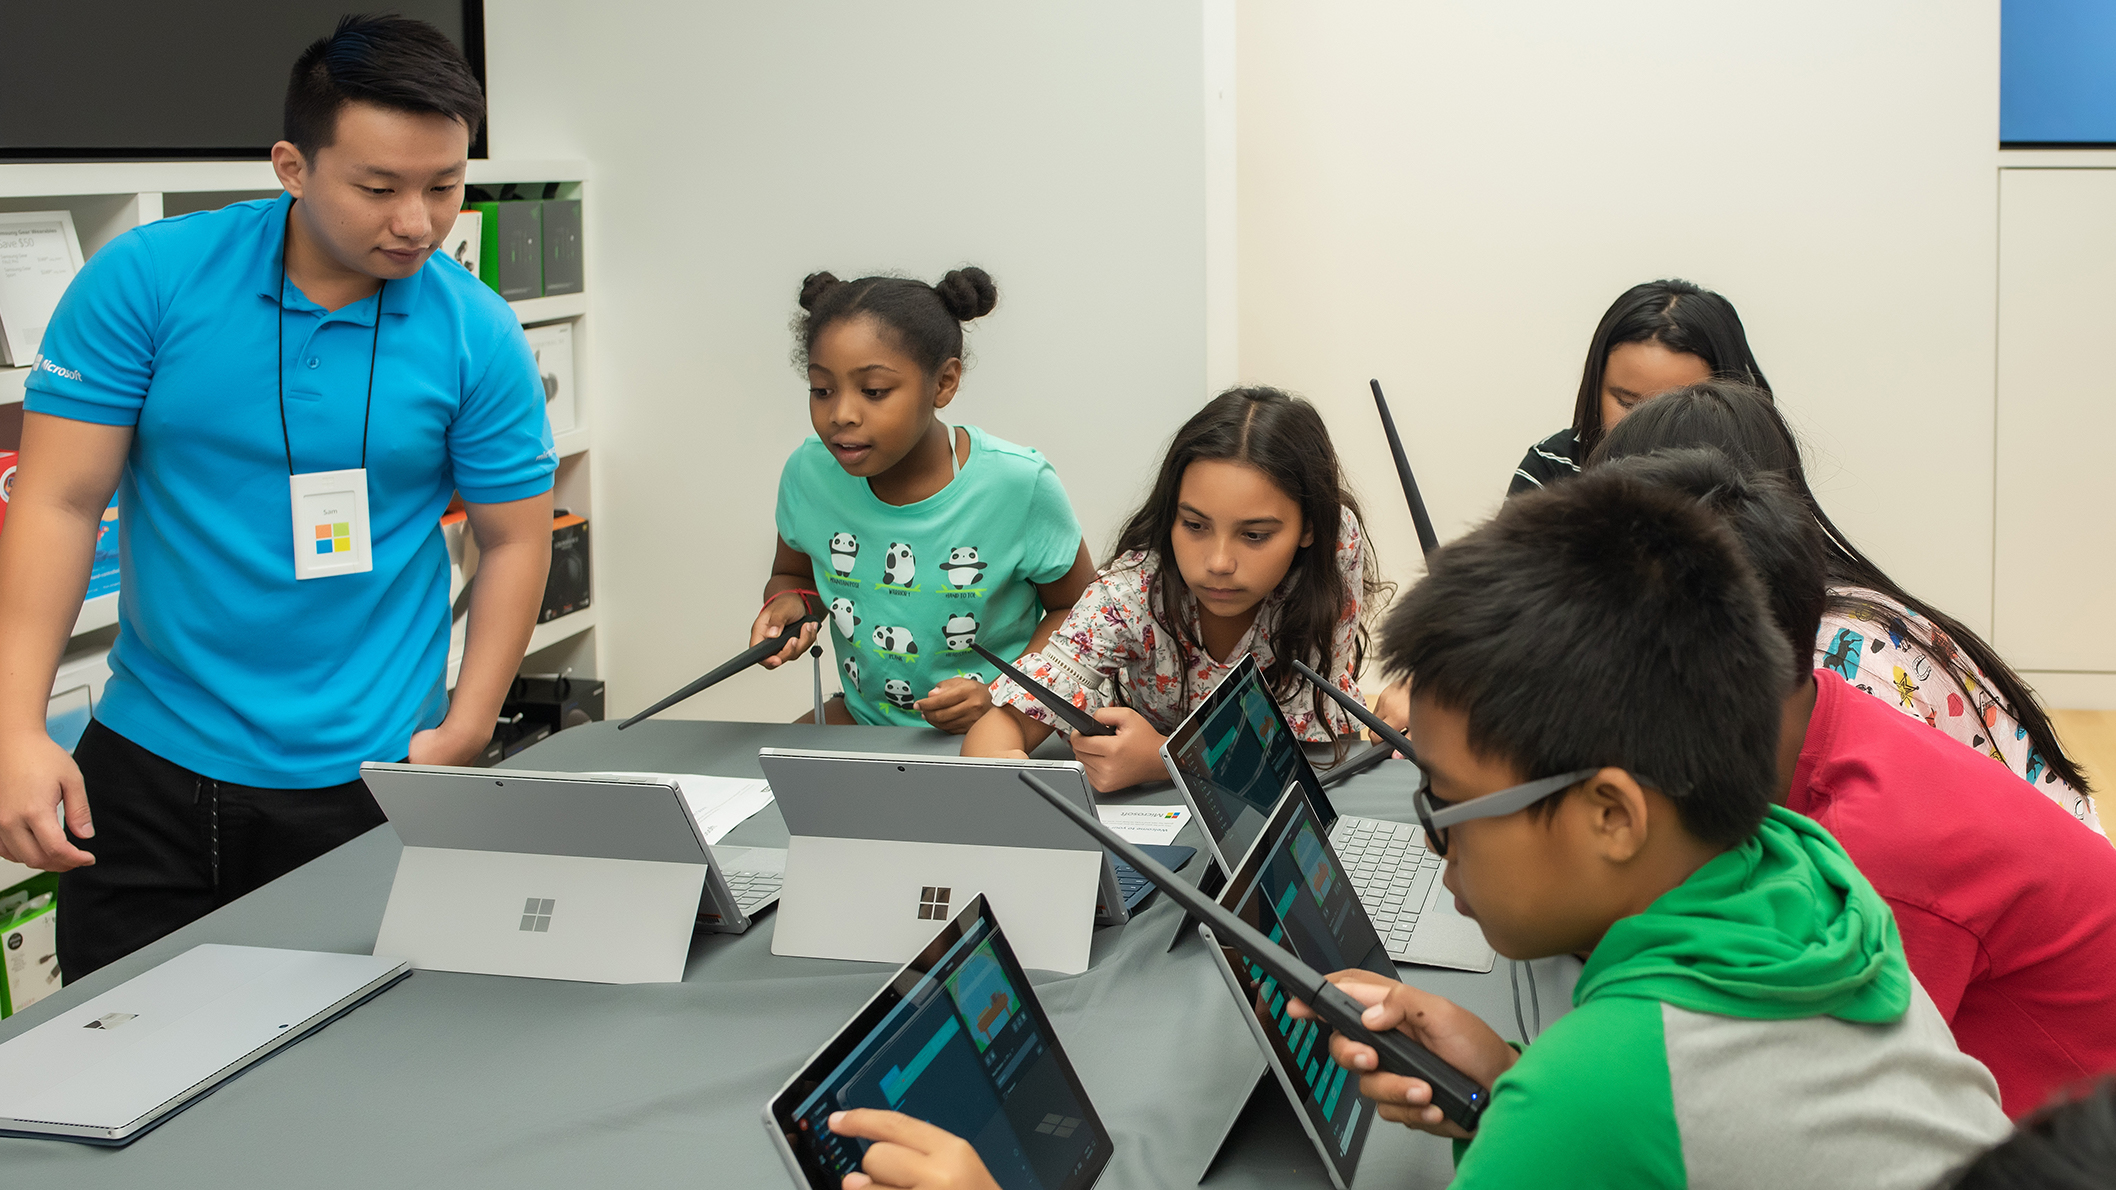 Microsoft employee instructs students how to code using the Harry Potter Kano coding wand and a Surface device.